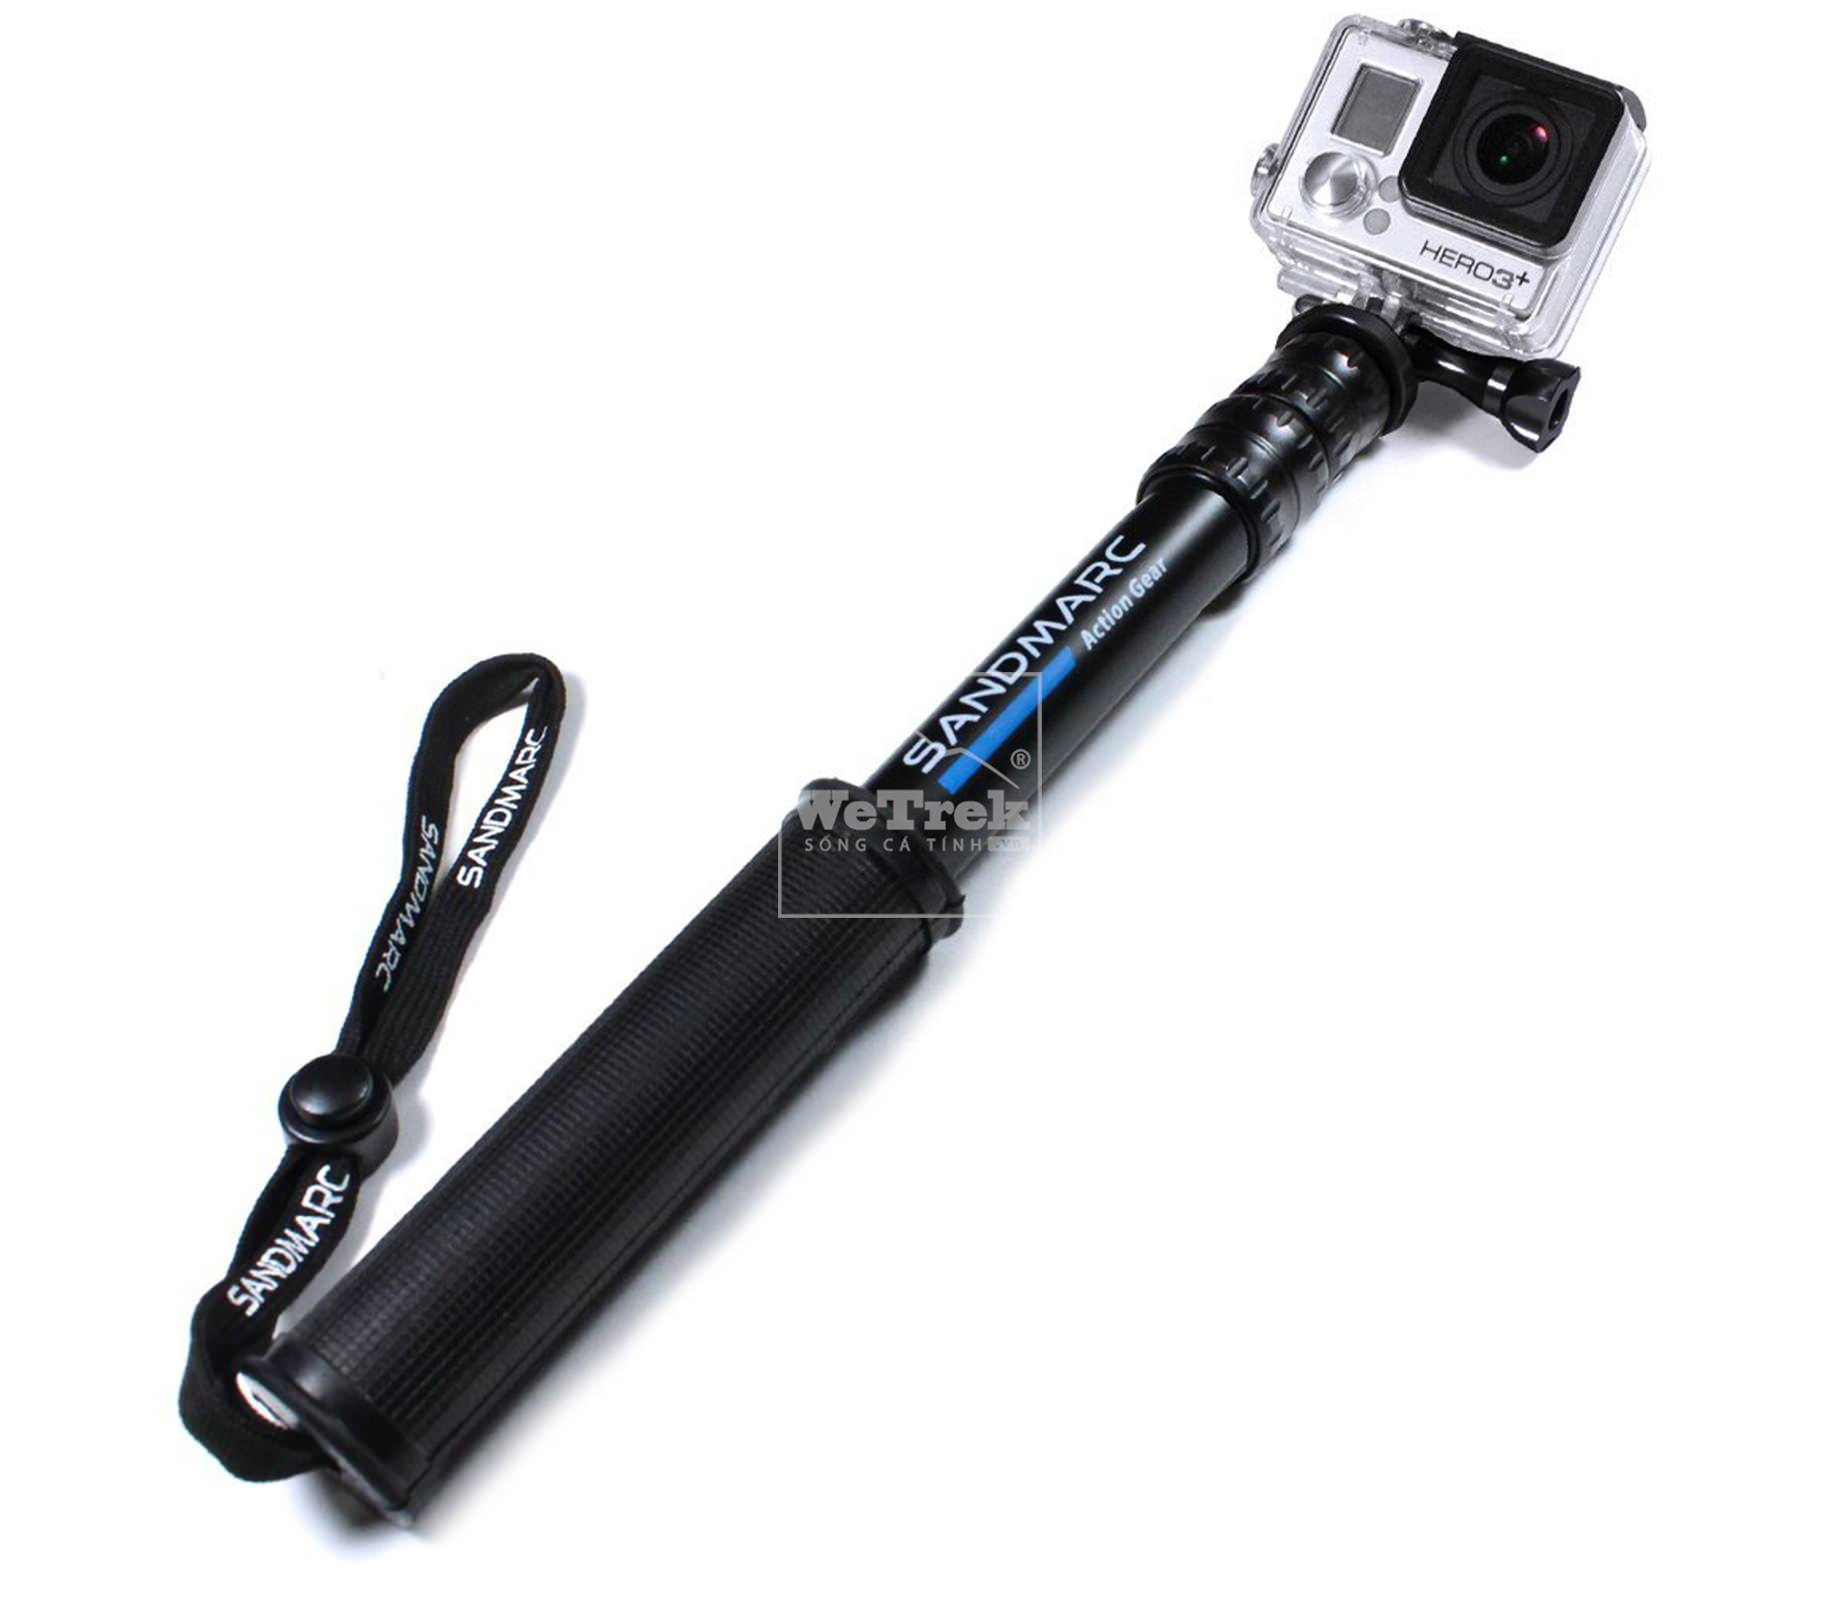 Gay-tu-suong-may-quay-GoPro-SANDMARC-Pole-Compact-Edition-7485_HasThumb.jpg